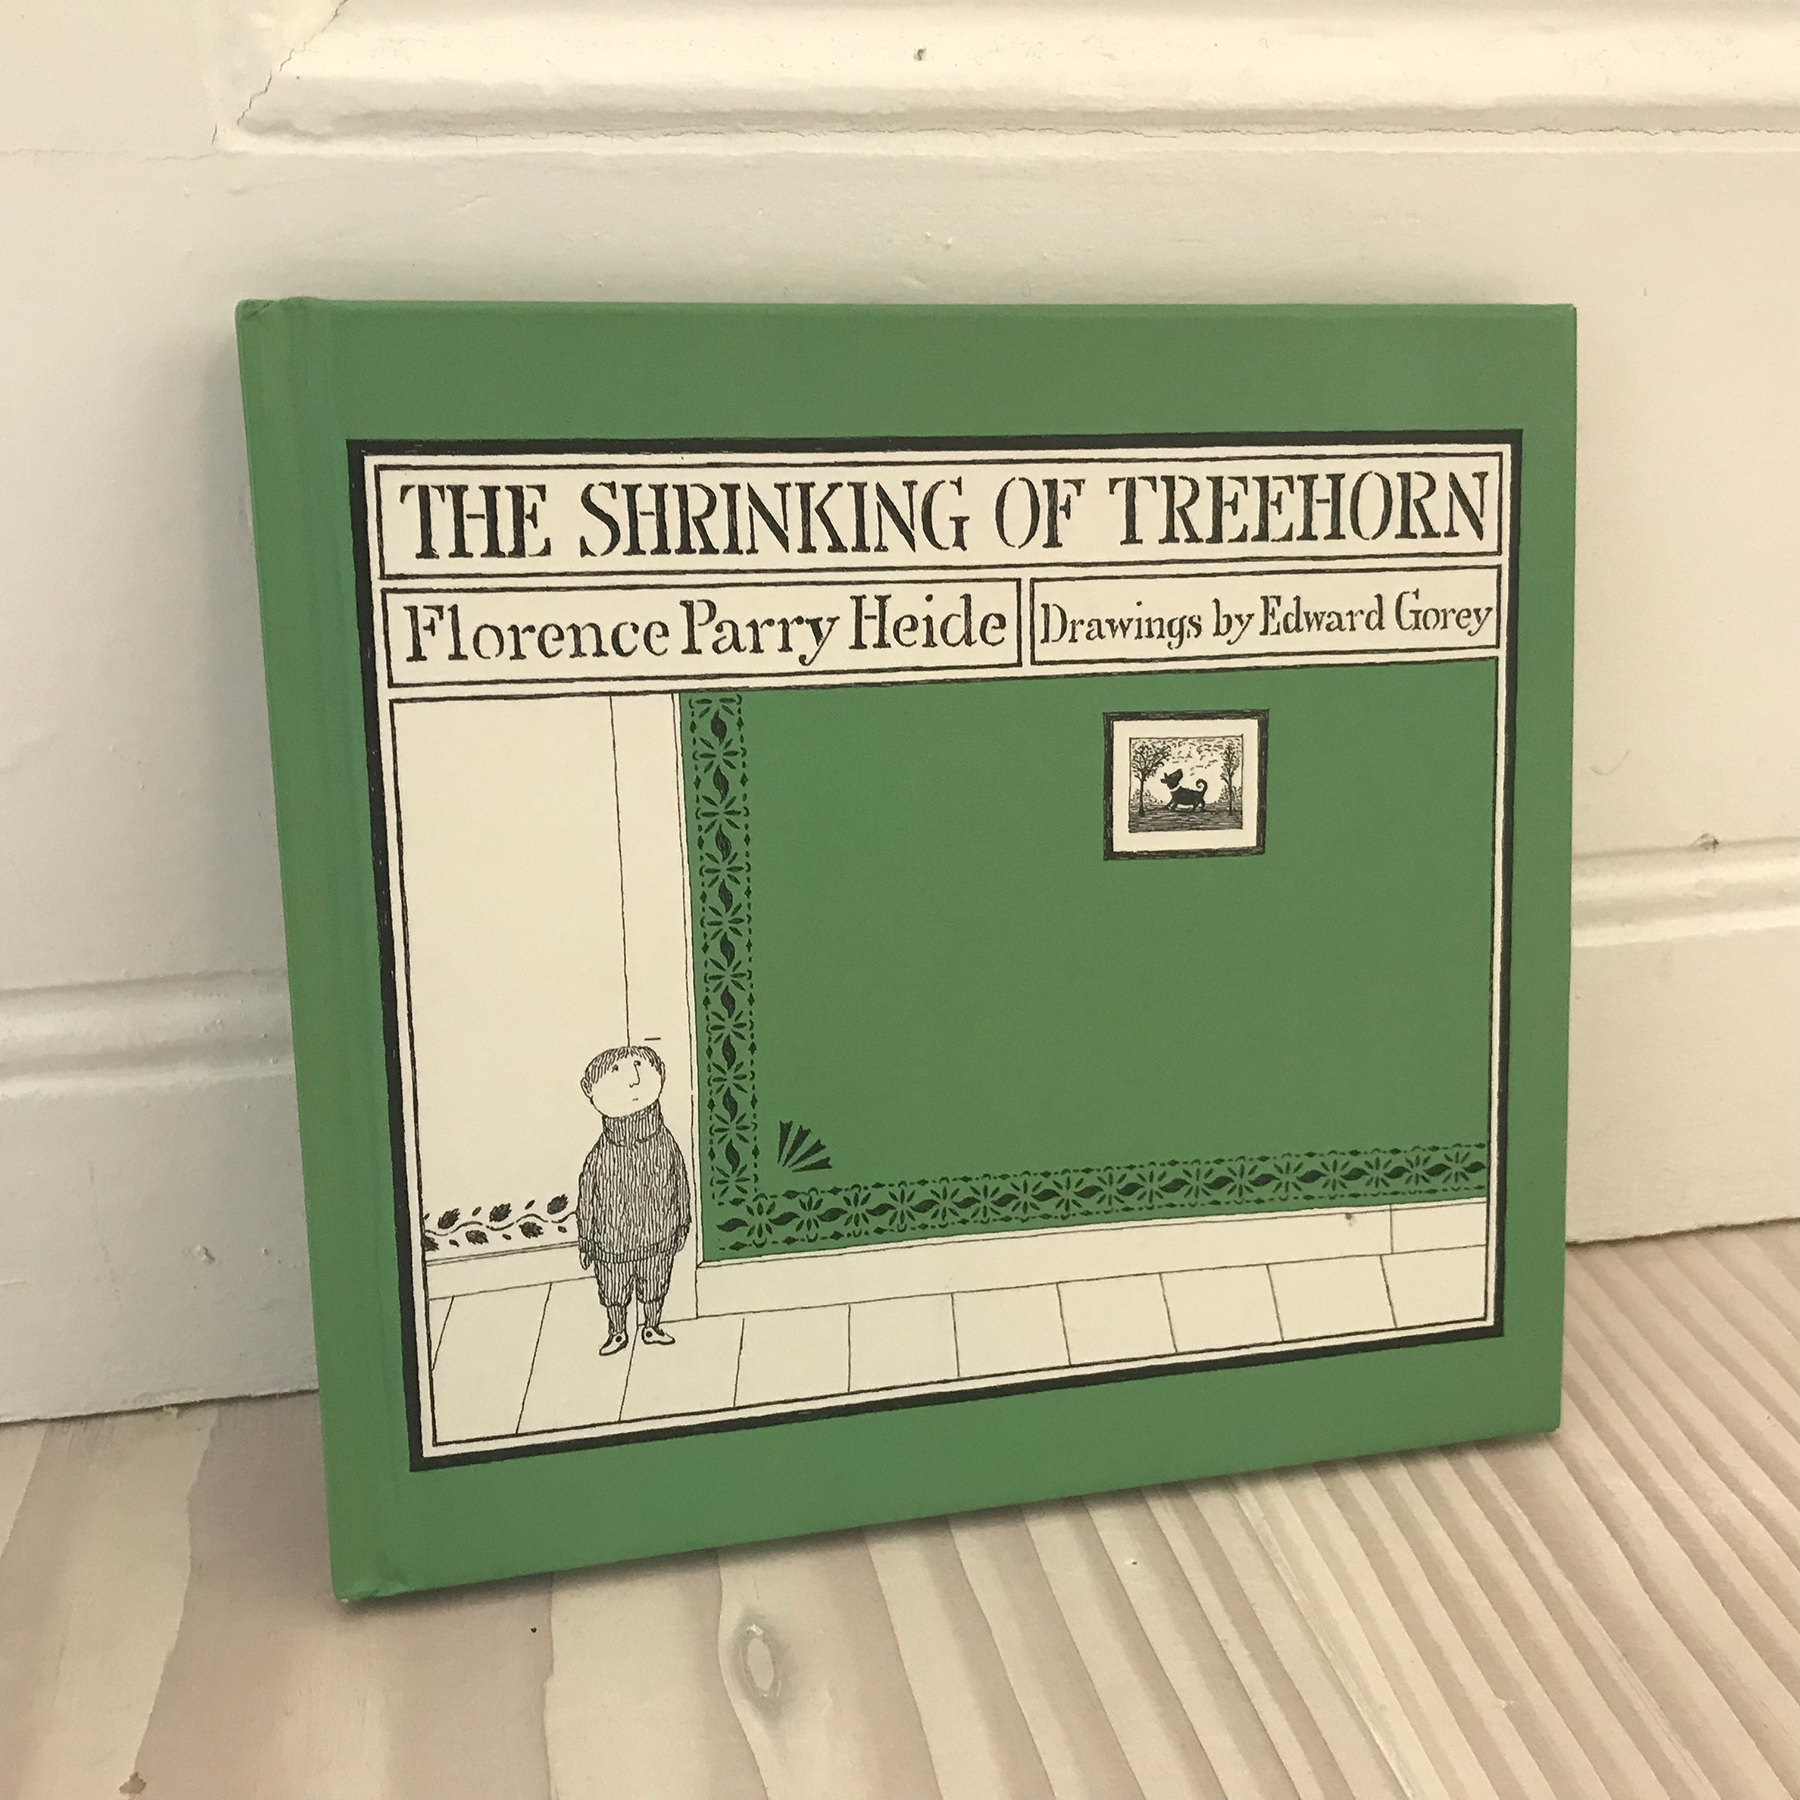 """The Shrinking of Treehorn  (Florence Parry Heide – writer;Edward Gorey – illustrator).I first discovered  The Shrinking of Treehorn  when I was ten, my headmistress read it to the whole school.It is a perfect story for any age, very funny, very clever with beautifully strange illustrations, and there is a touch of the subversive about it. I loved it, my class loved it, my headmistress loved it.If it is possible to have such a thing as one favourite book, then this might be it. I never tire of reading it or of looking at the drawings, and it has been a huge influence on my work.A few years ago I got a parcel in the post, inside was a copy of The Shrinking of Treehorn, inscribed with the words, """"thank you for liking Treehorn and saying so! Florence Parry Heide, a Clarice Bean fan"""" .It is one of my most treasured possessions."""